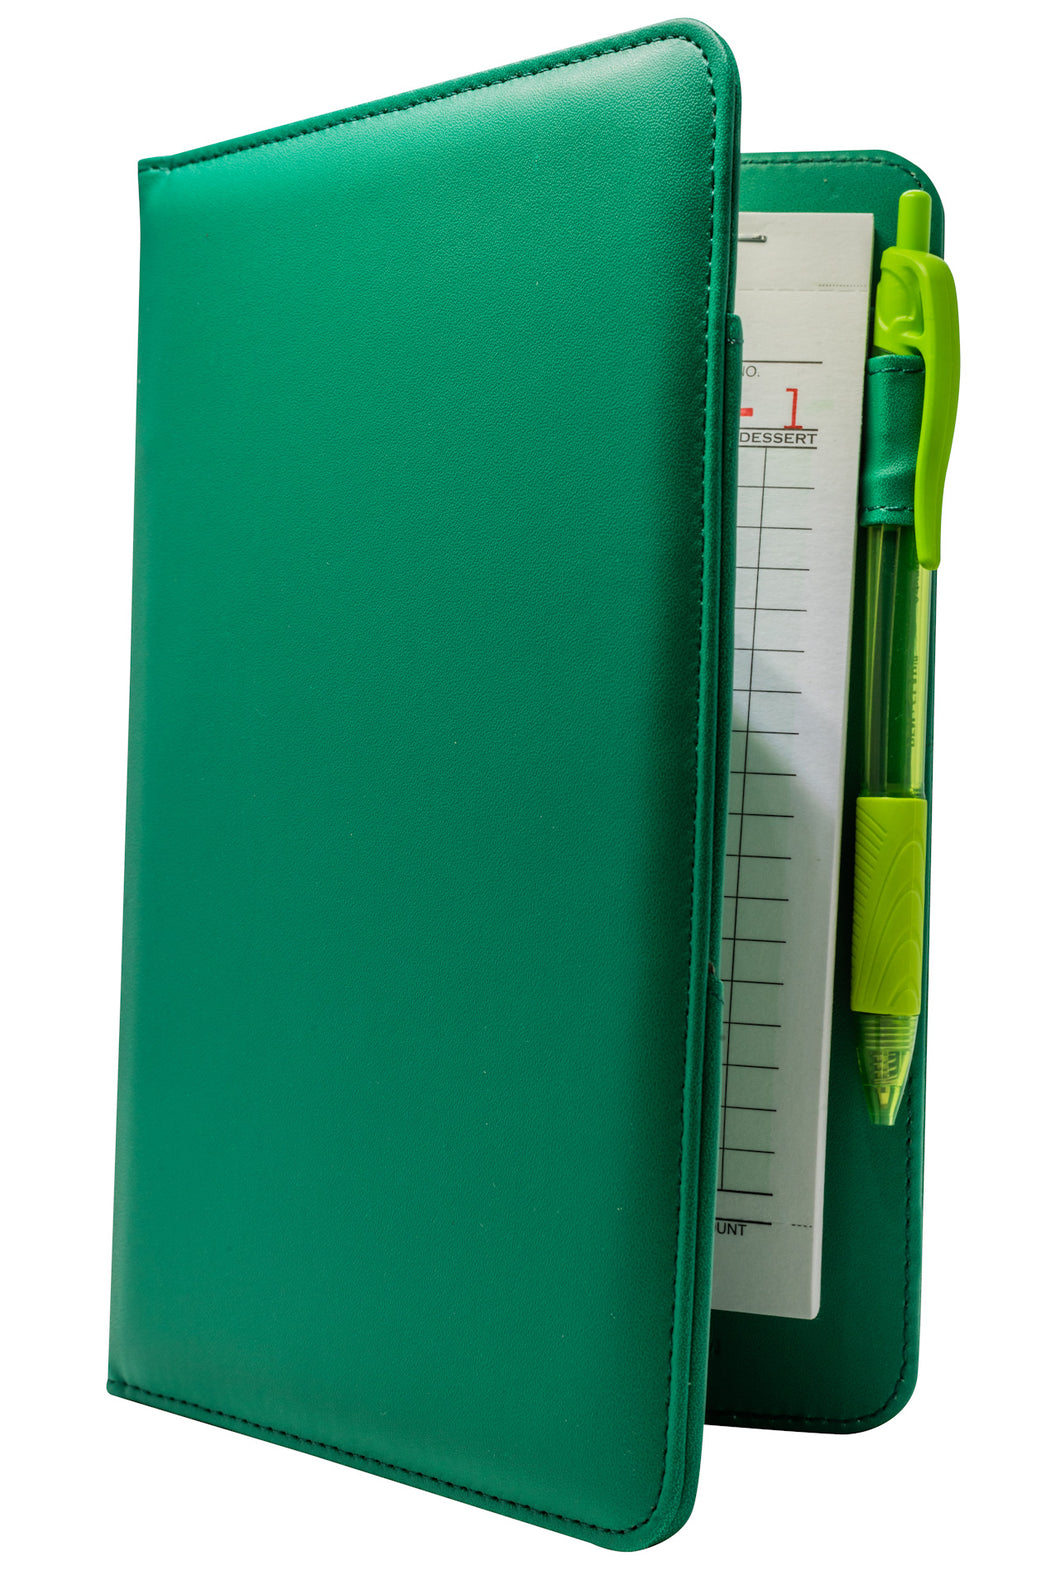 Irish Green Server Book for Waitresses on St. Patrick's Day